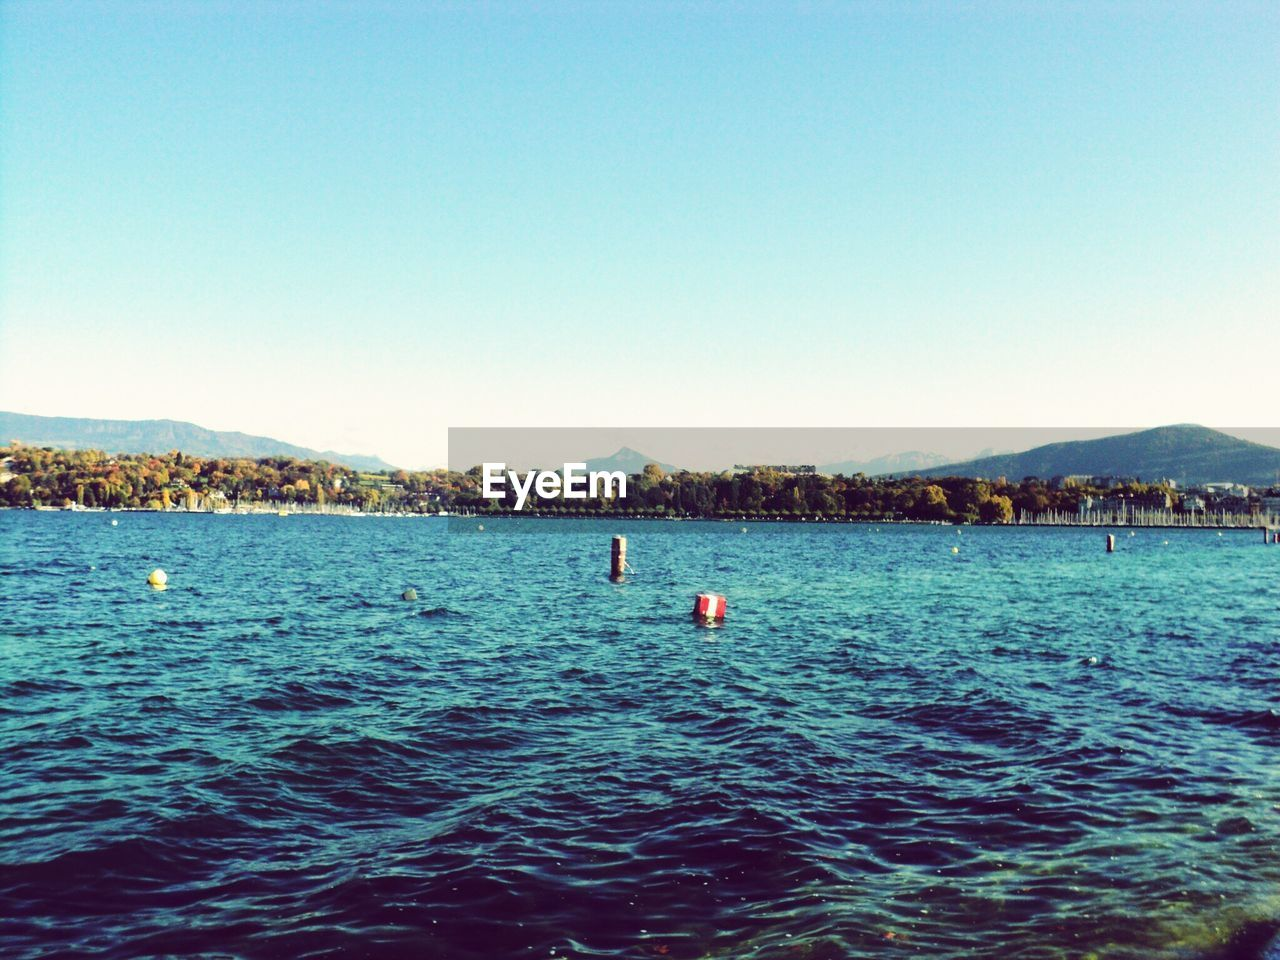 water, clear sky, blue, sea, nature, outdoors, beauty in nature, waterfront, copy space, rippled, scenics, tranquility, buoy, swimming, floating on water, day, no people, mountain, scenery, sky